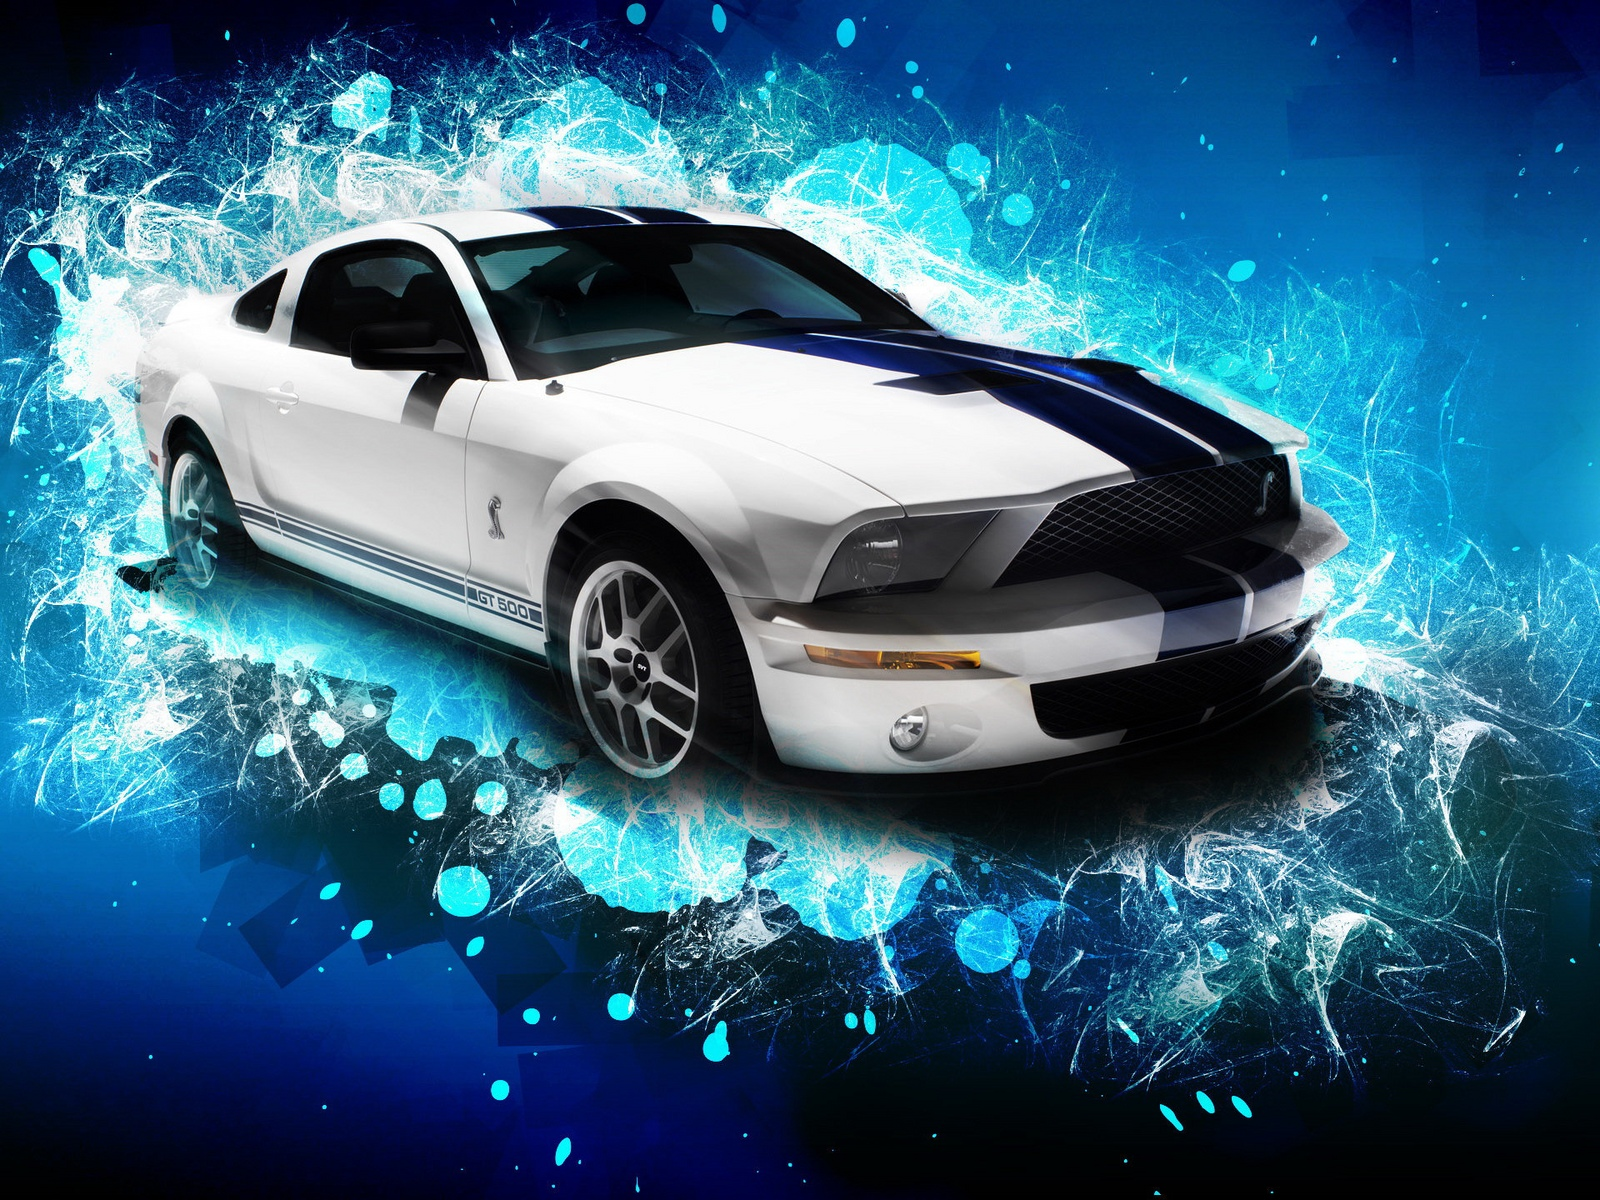 cool-car-B-wallpaper-wpc5803664